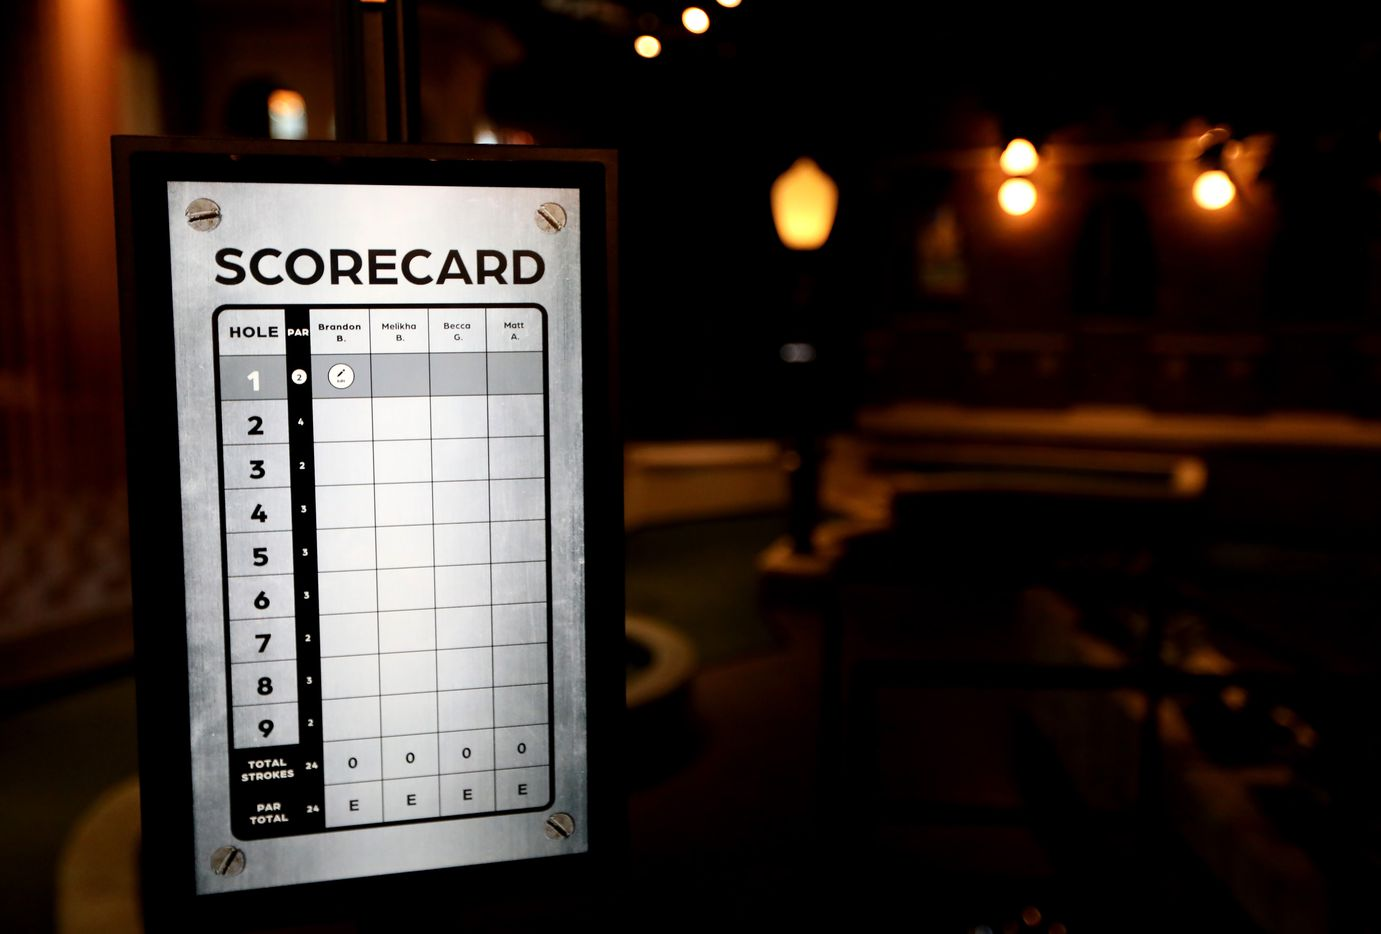 A touchscreen scorecard at Puttery, a new indoor mini golf and entertainment concept in The Colony, Texas, Monday, August 30, 2021.